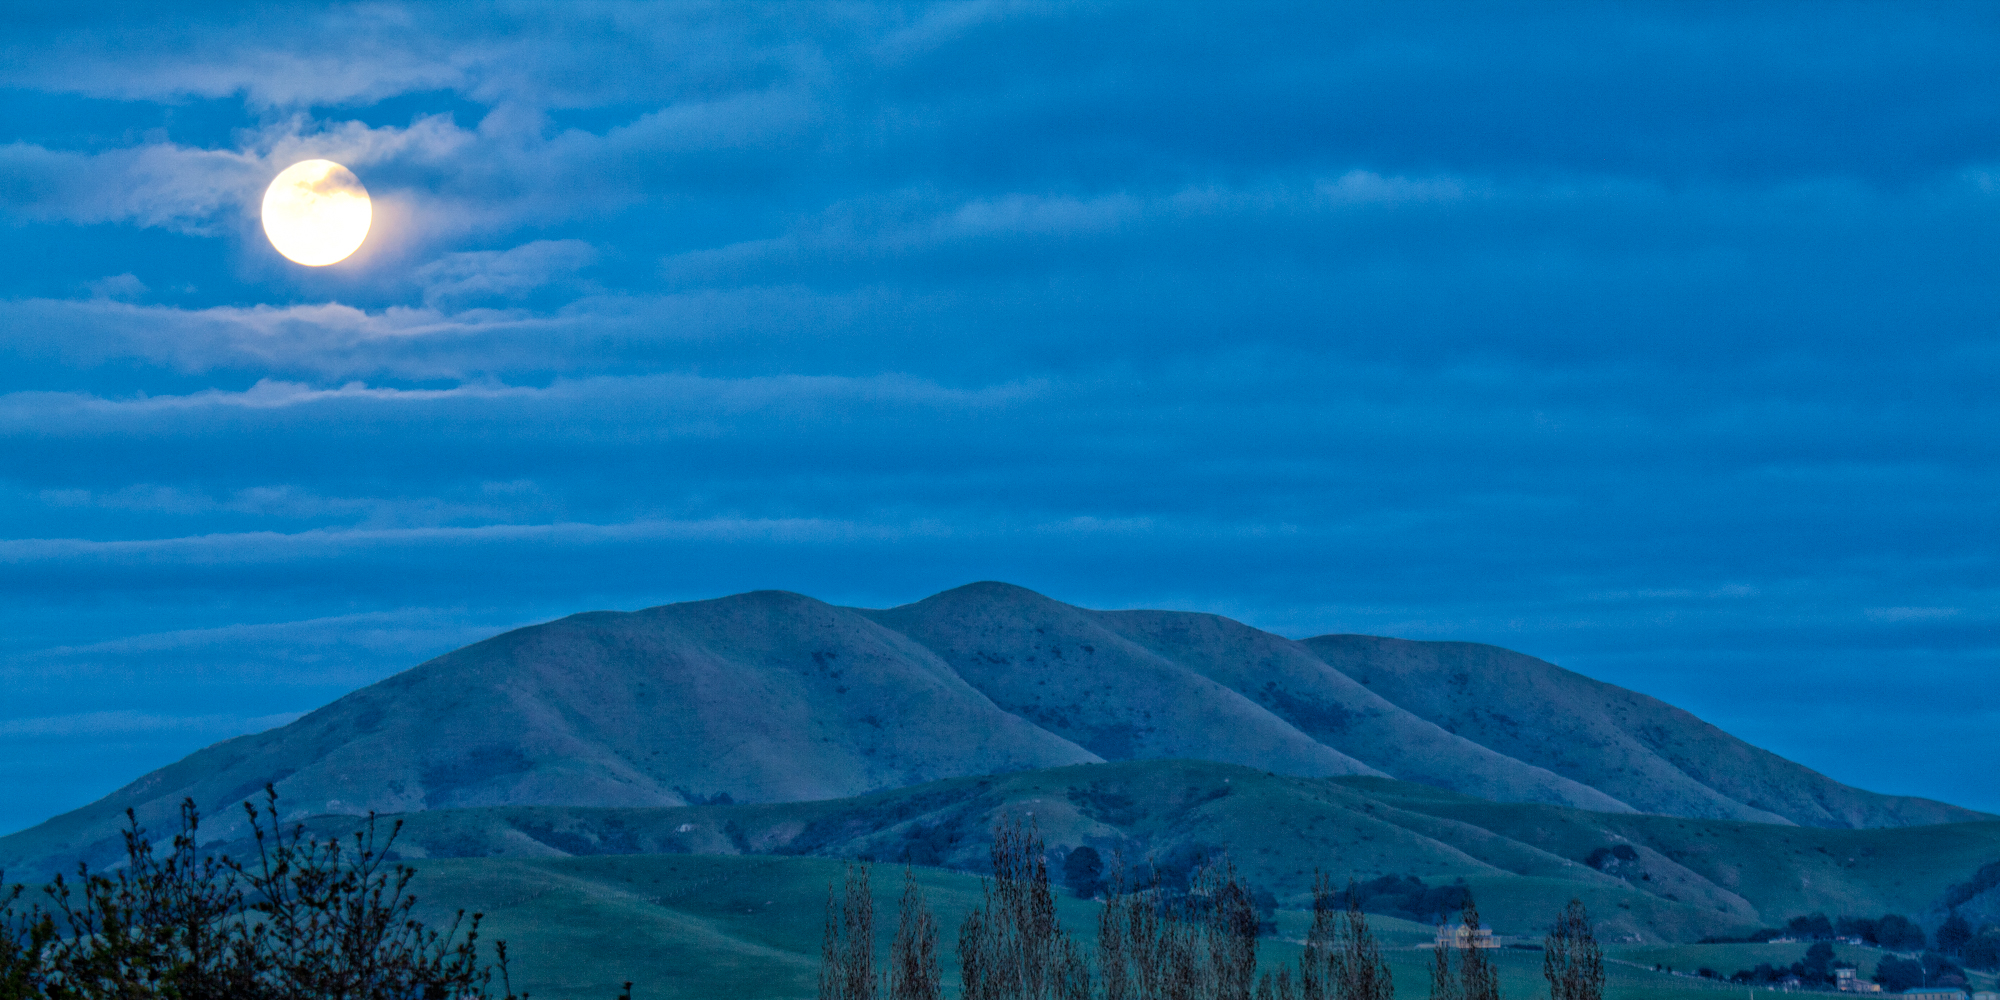 elizabeth-fenwick-photography-painterly-inverness-ca-moon-black-moutain-elephant-mountain.jpg